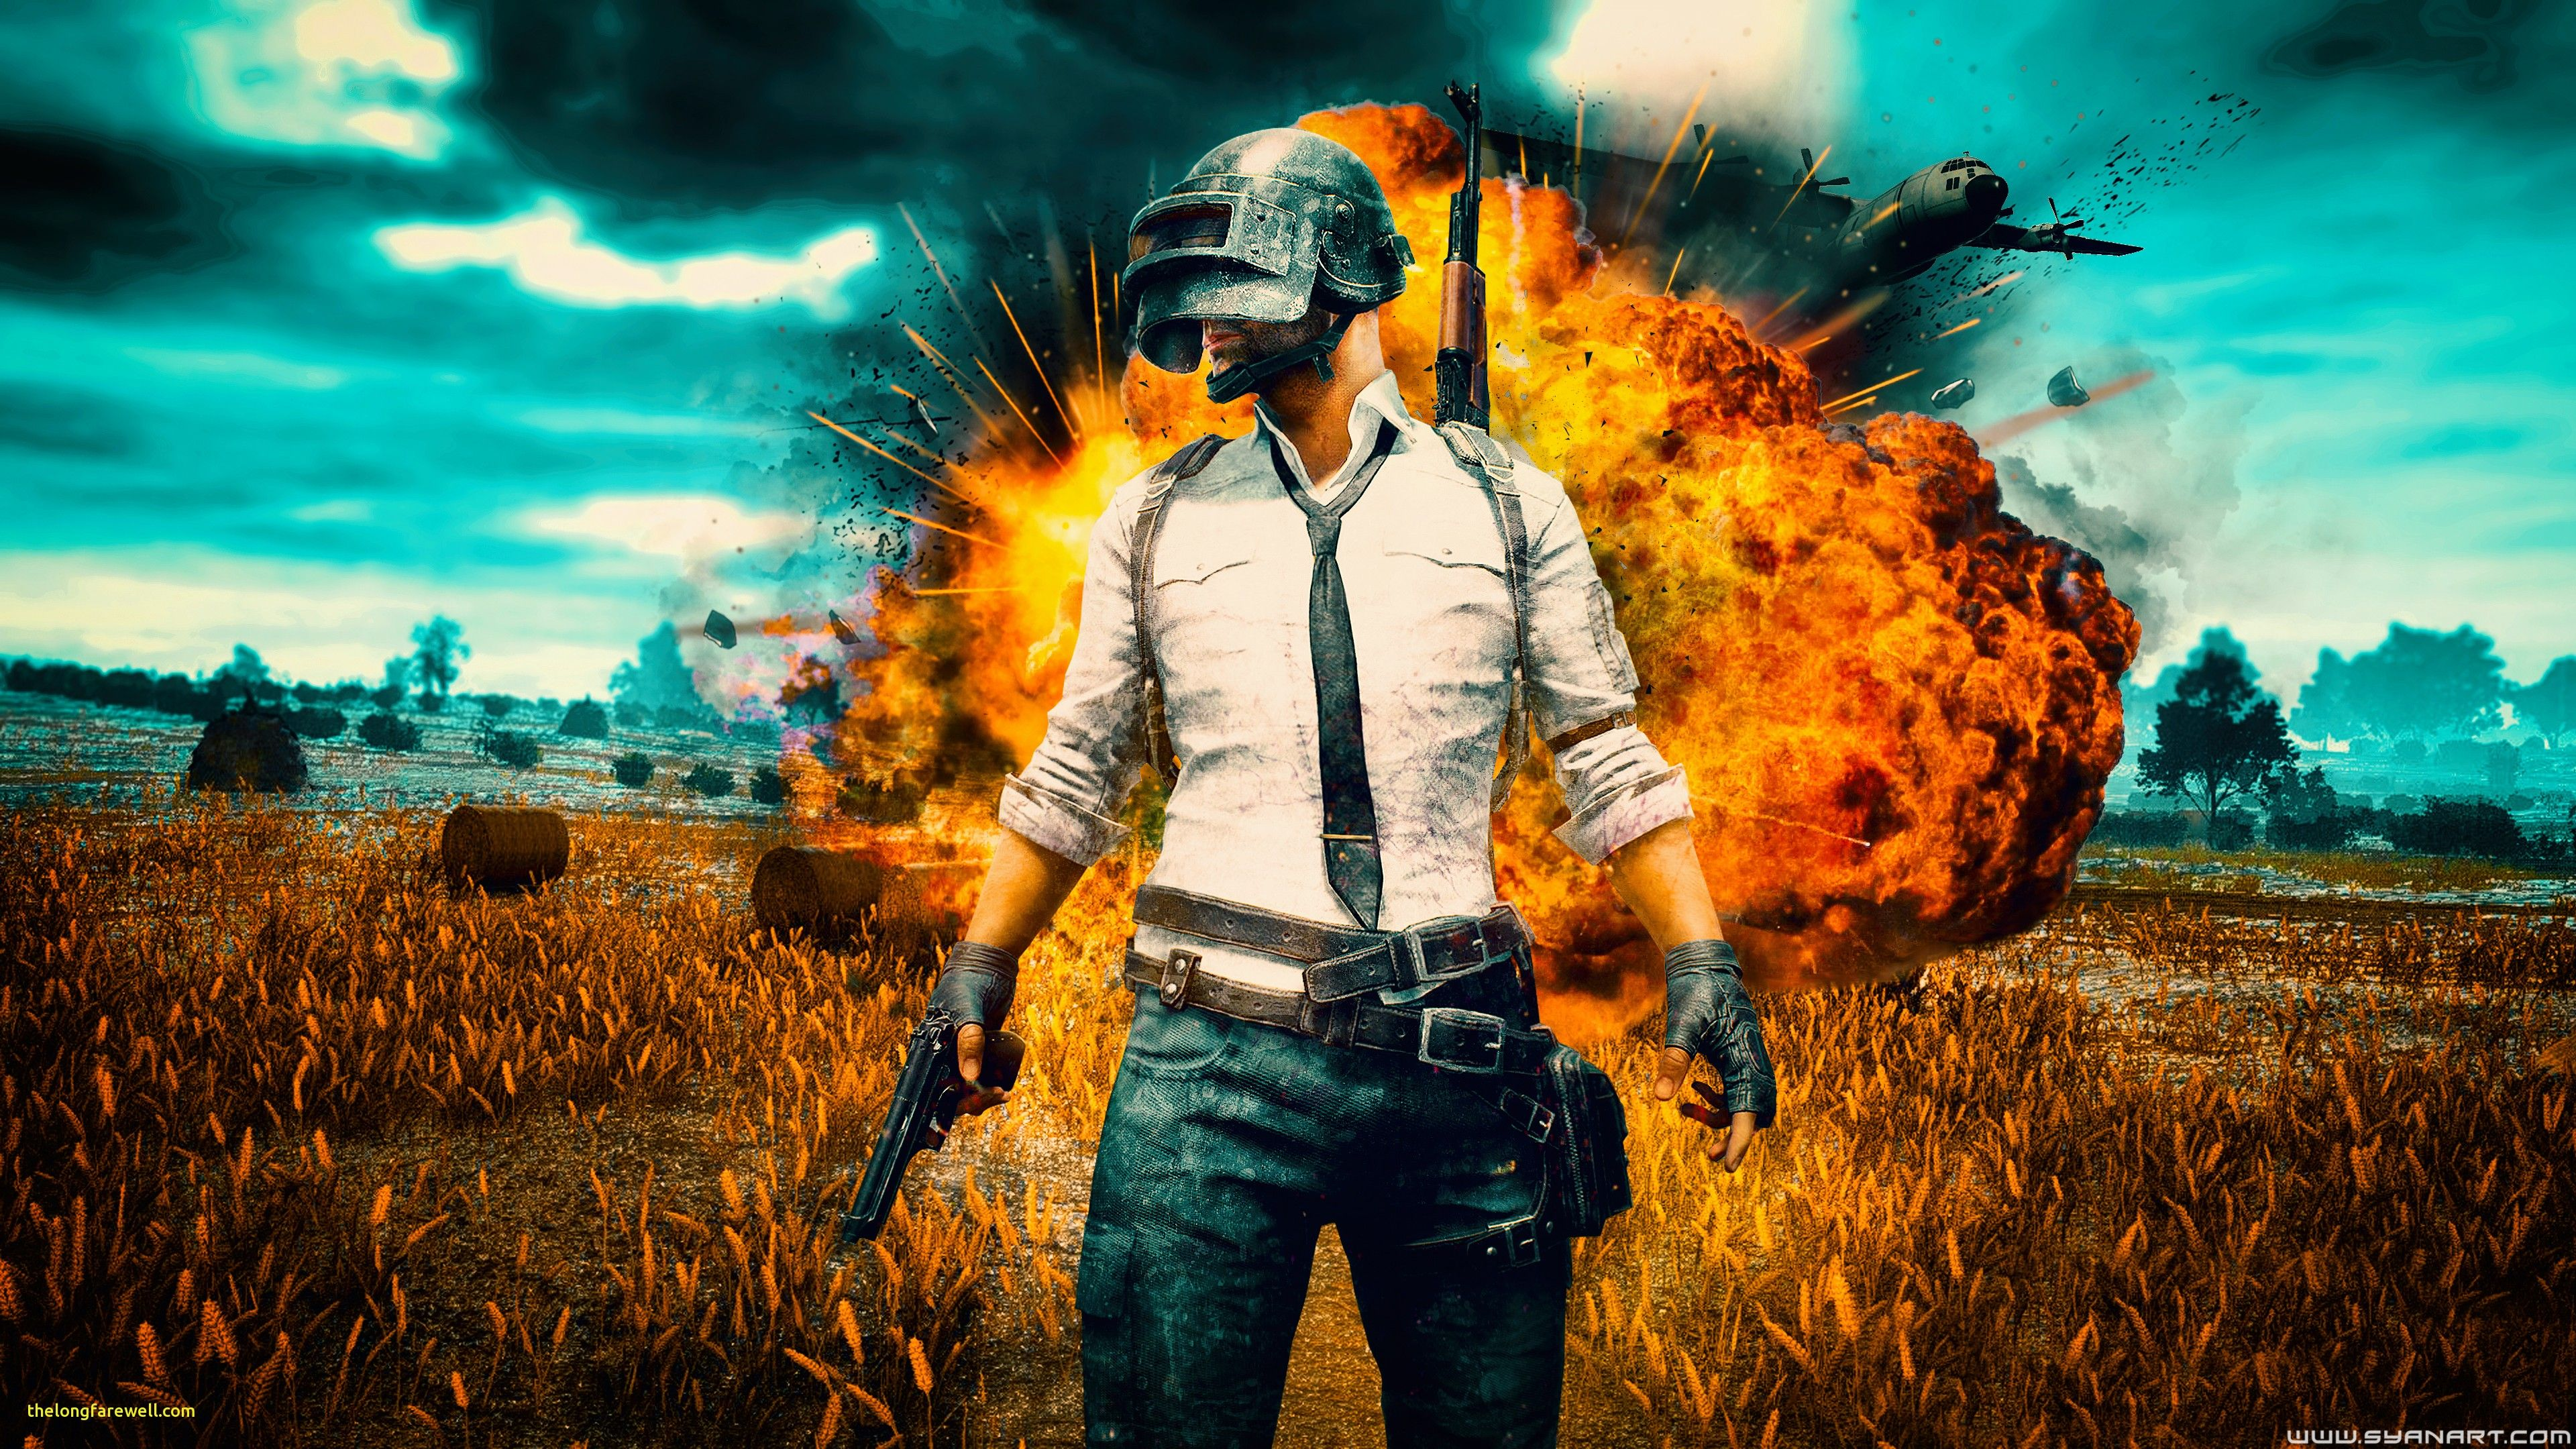 pubg new wallpaper download